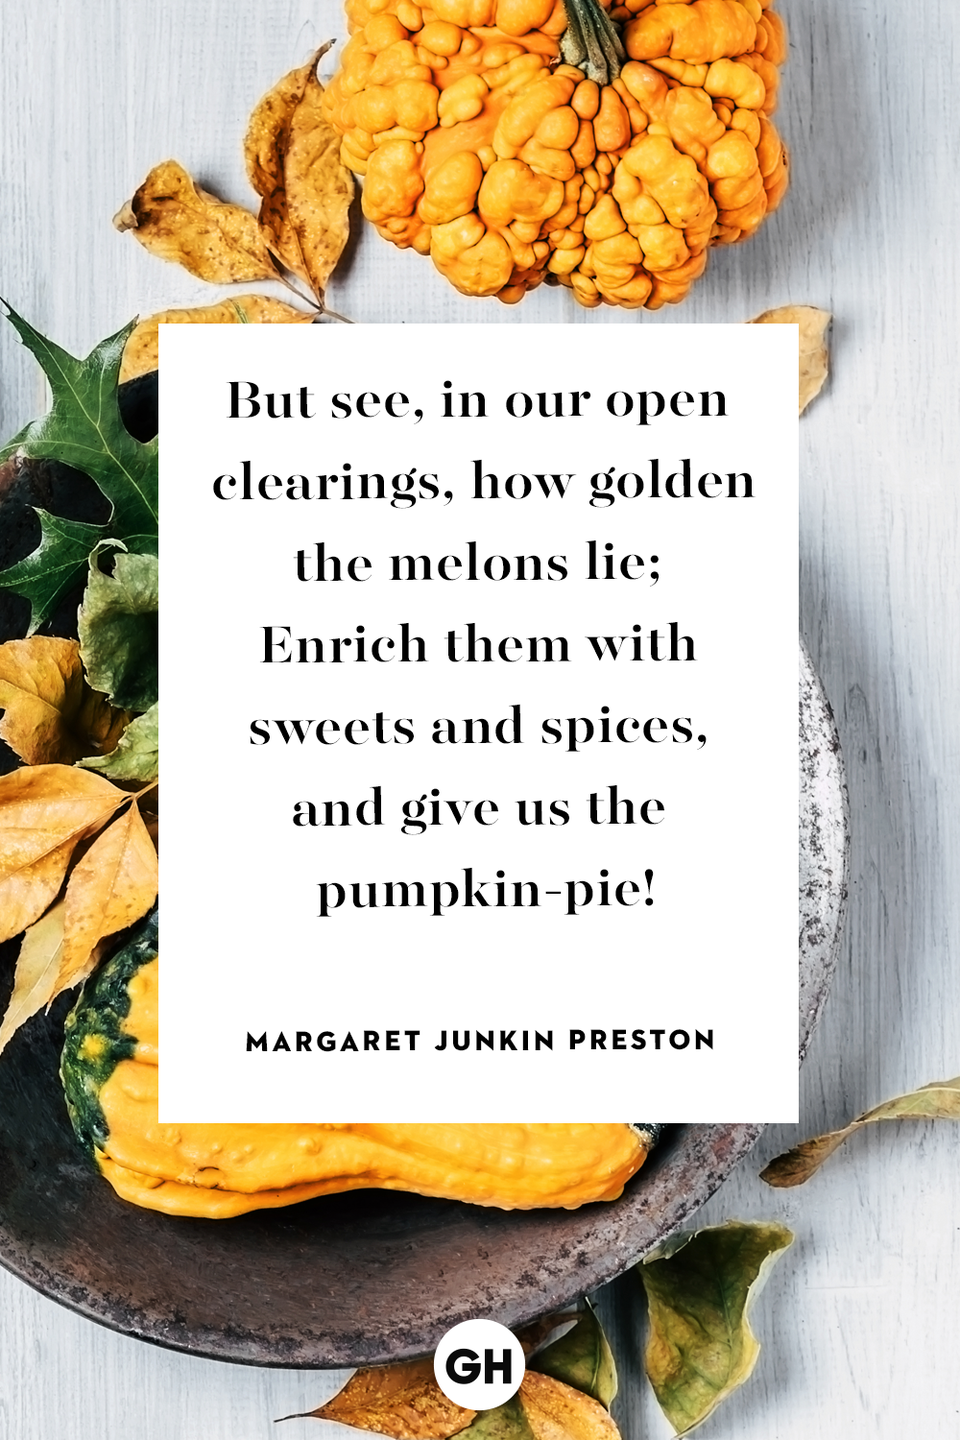 <p>But see, in our open clearings, how golden the melons lie; Enrich them with sweets and spices, and give us the pumpkin-pie!</p>